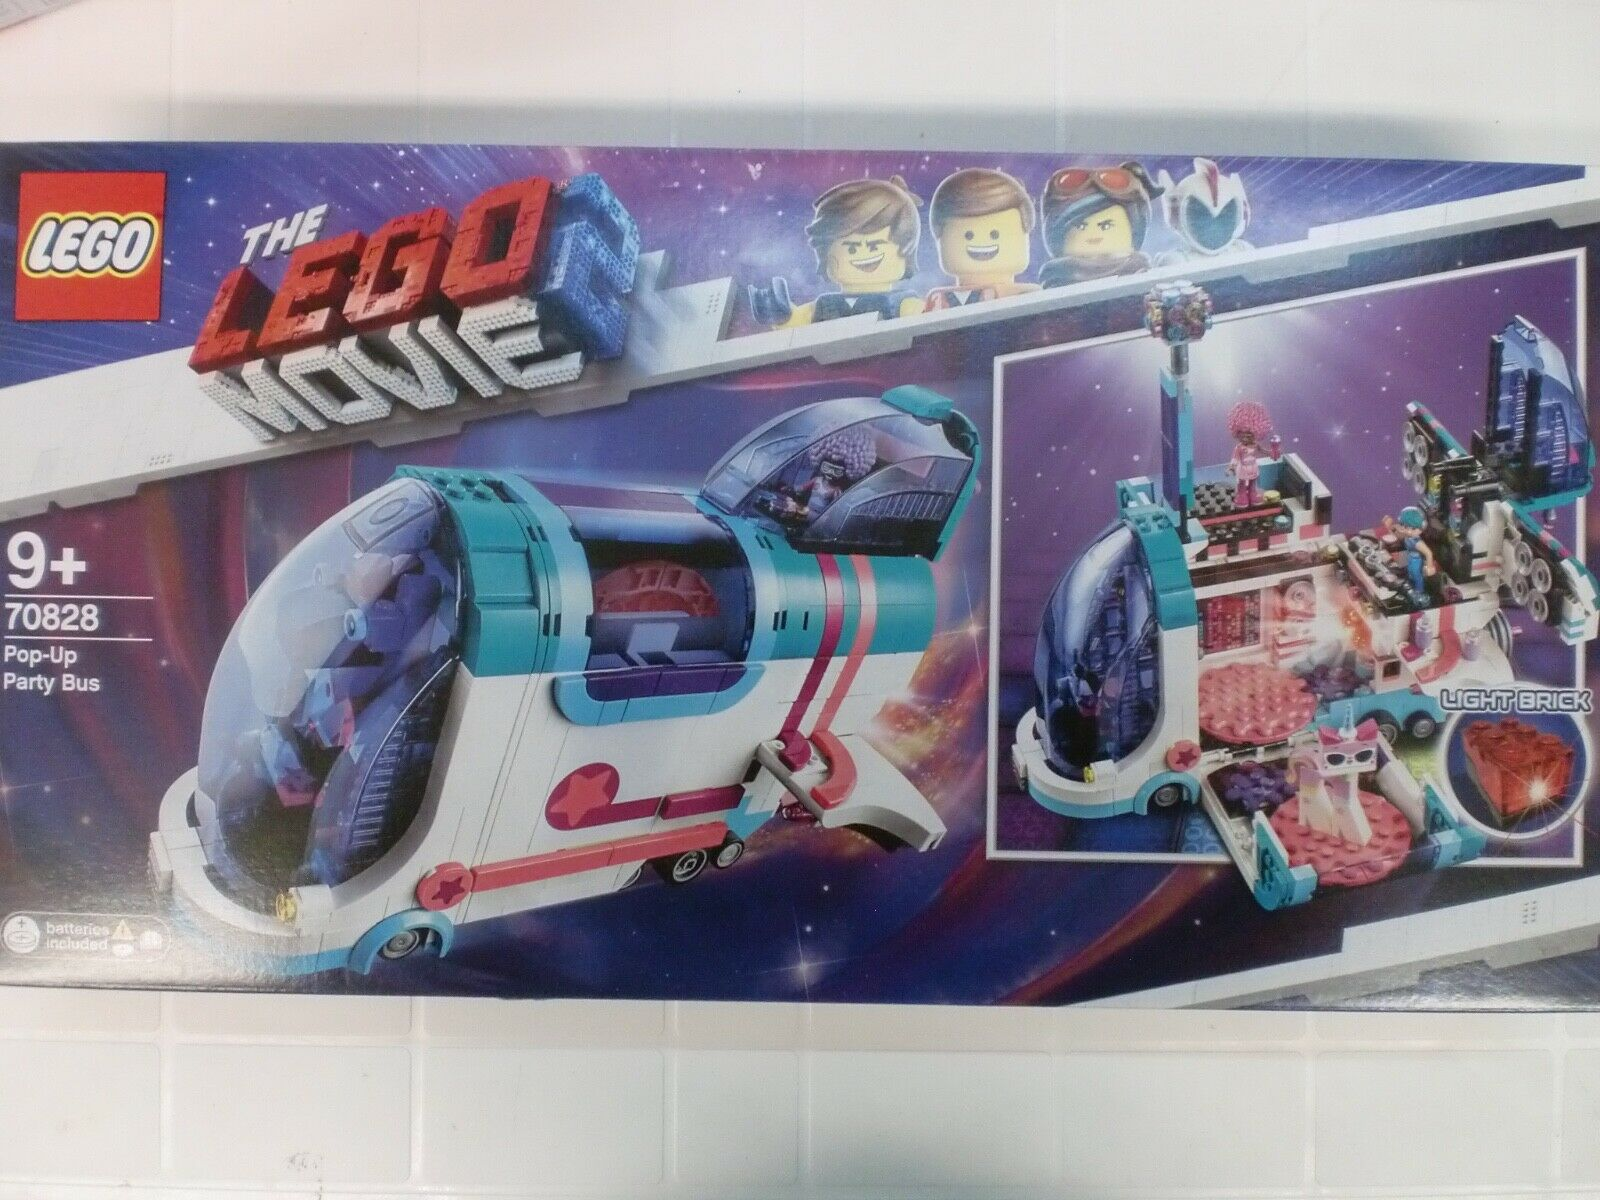 LEGO 70828 - POP-UP PARTY BUS - SERIE MOVIE 2